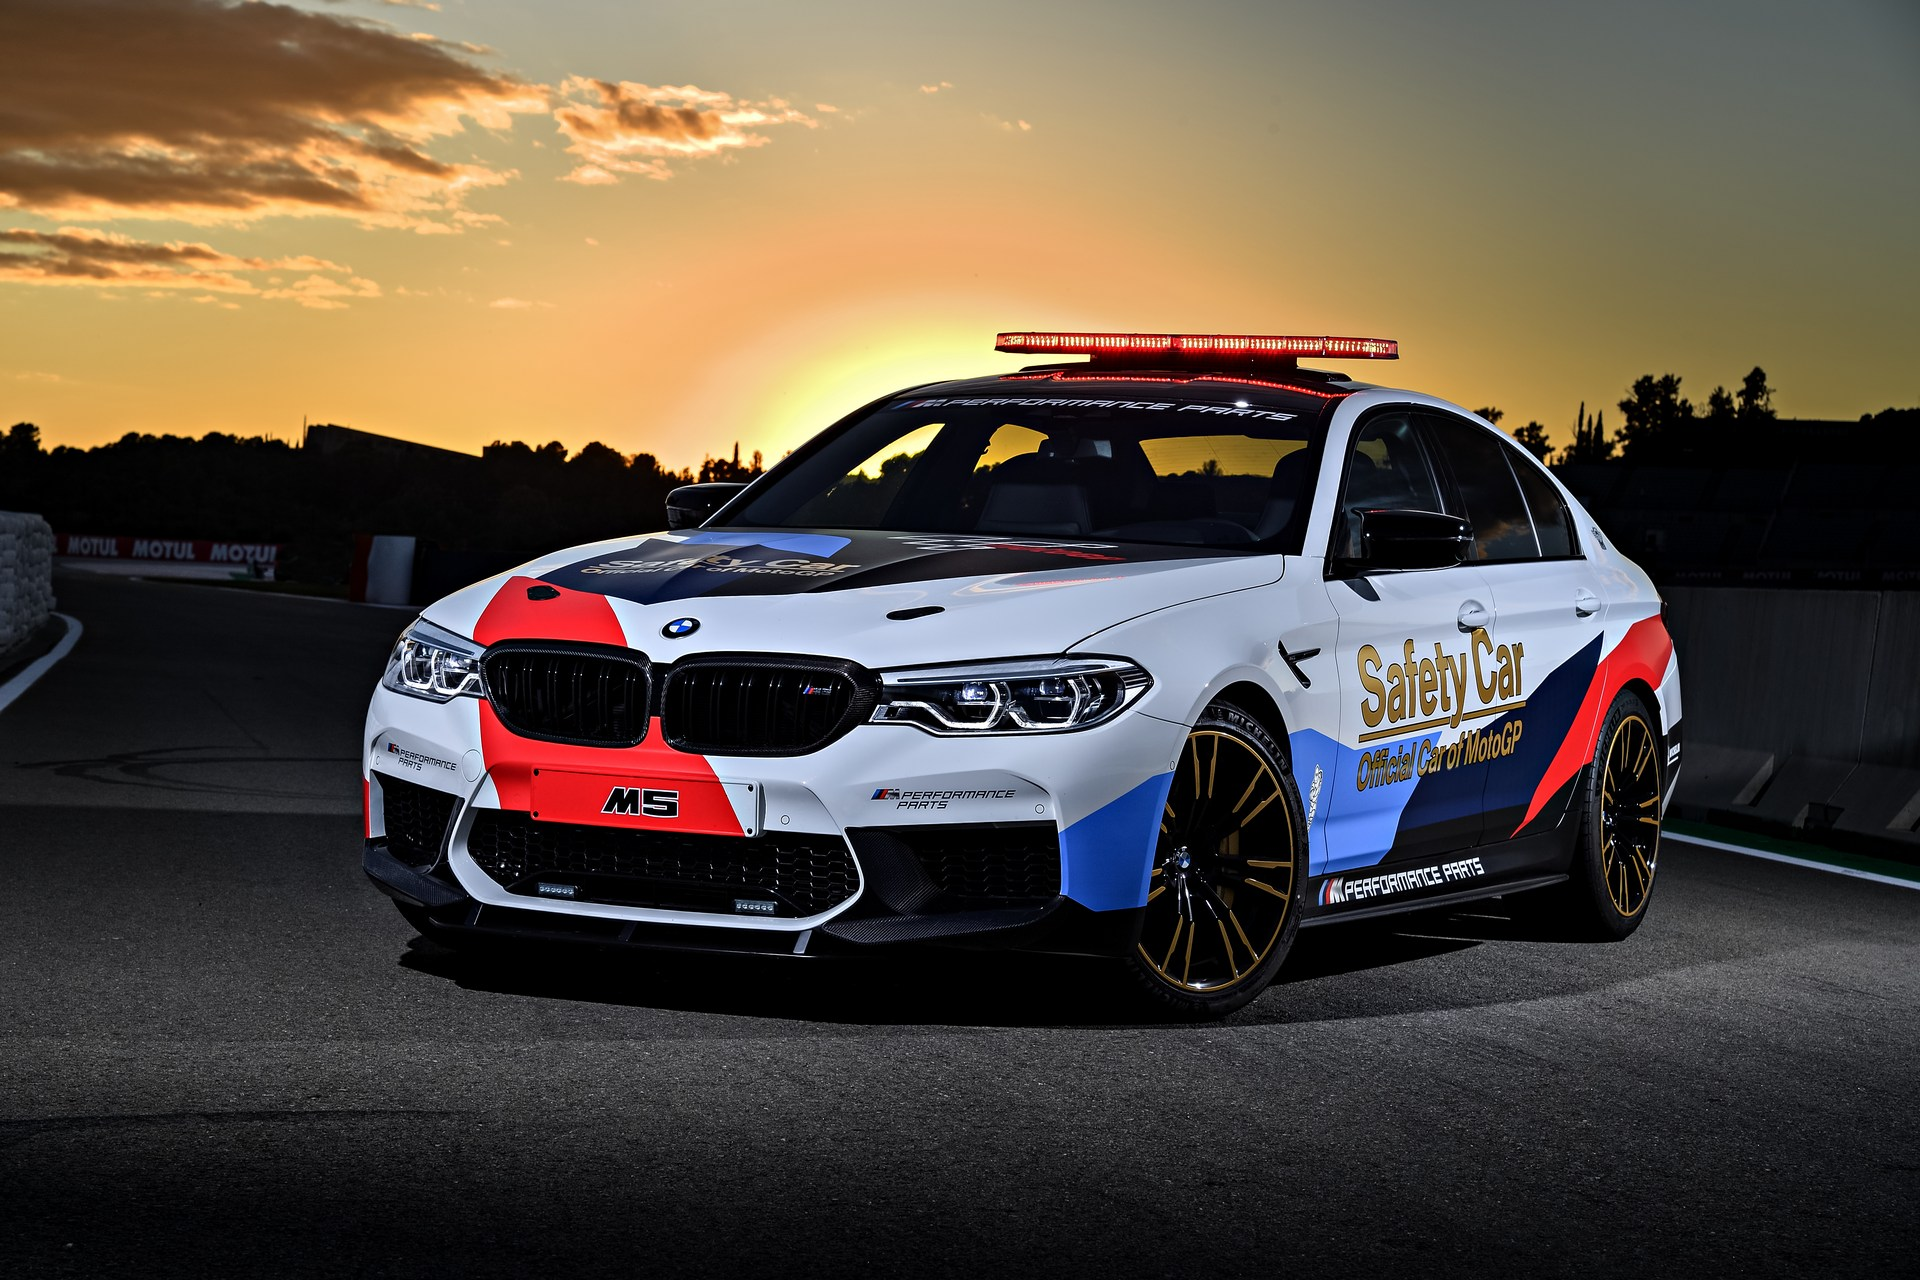 BMW_M5_Safety_Car_0012